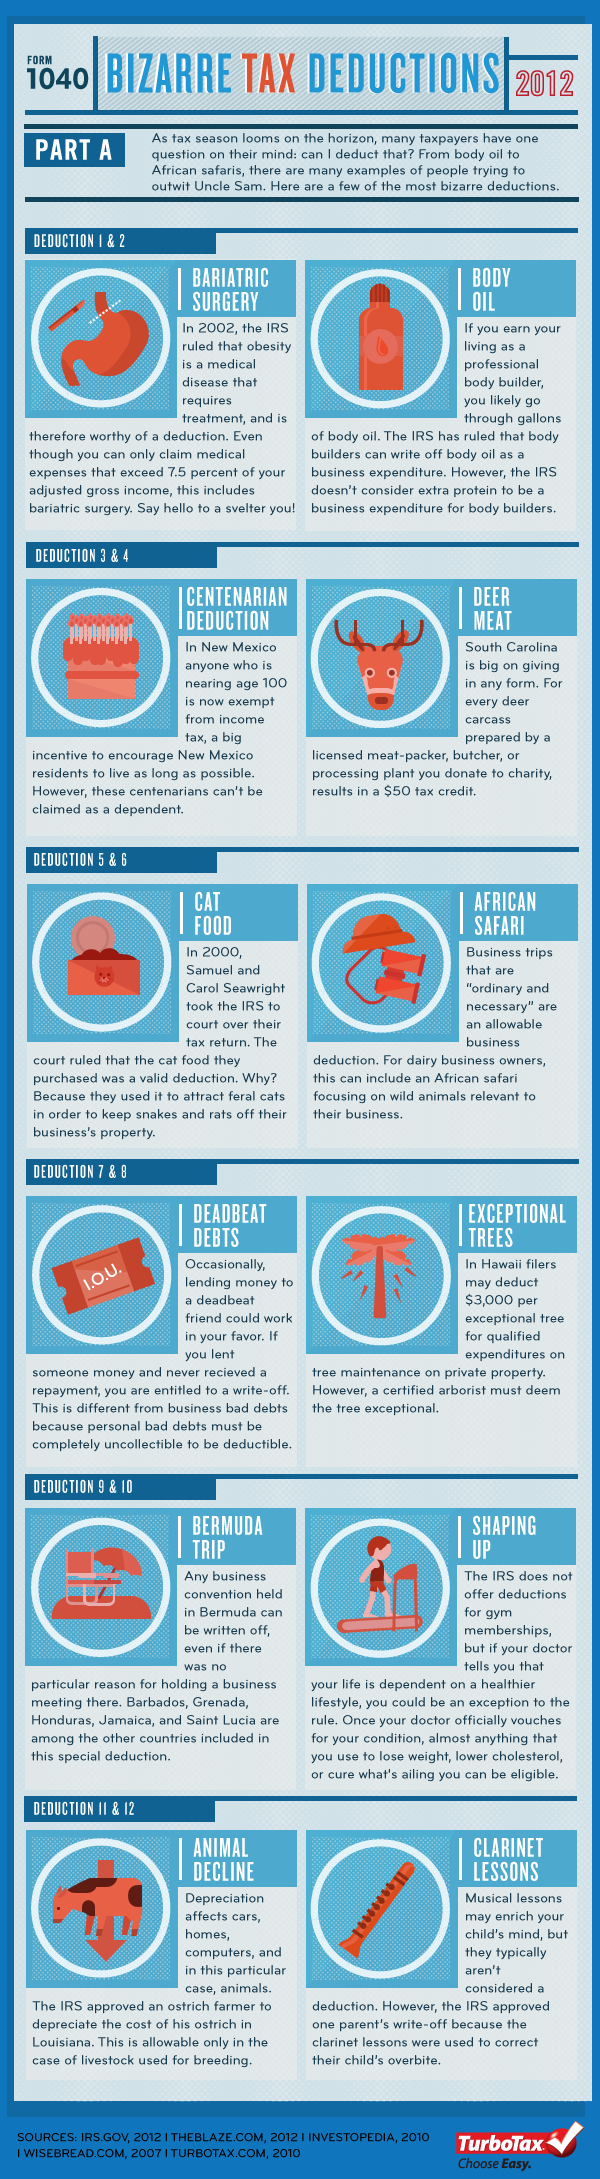 bizarre-tax-deductions-infographic